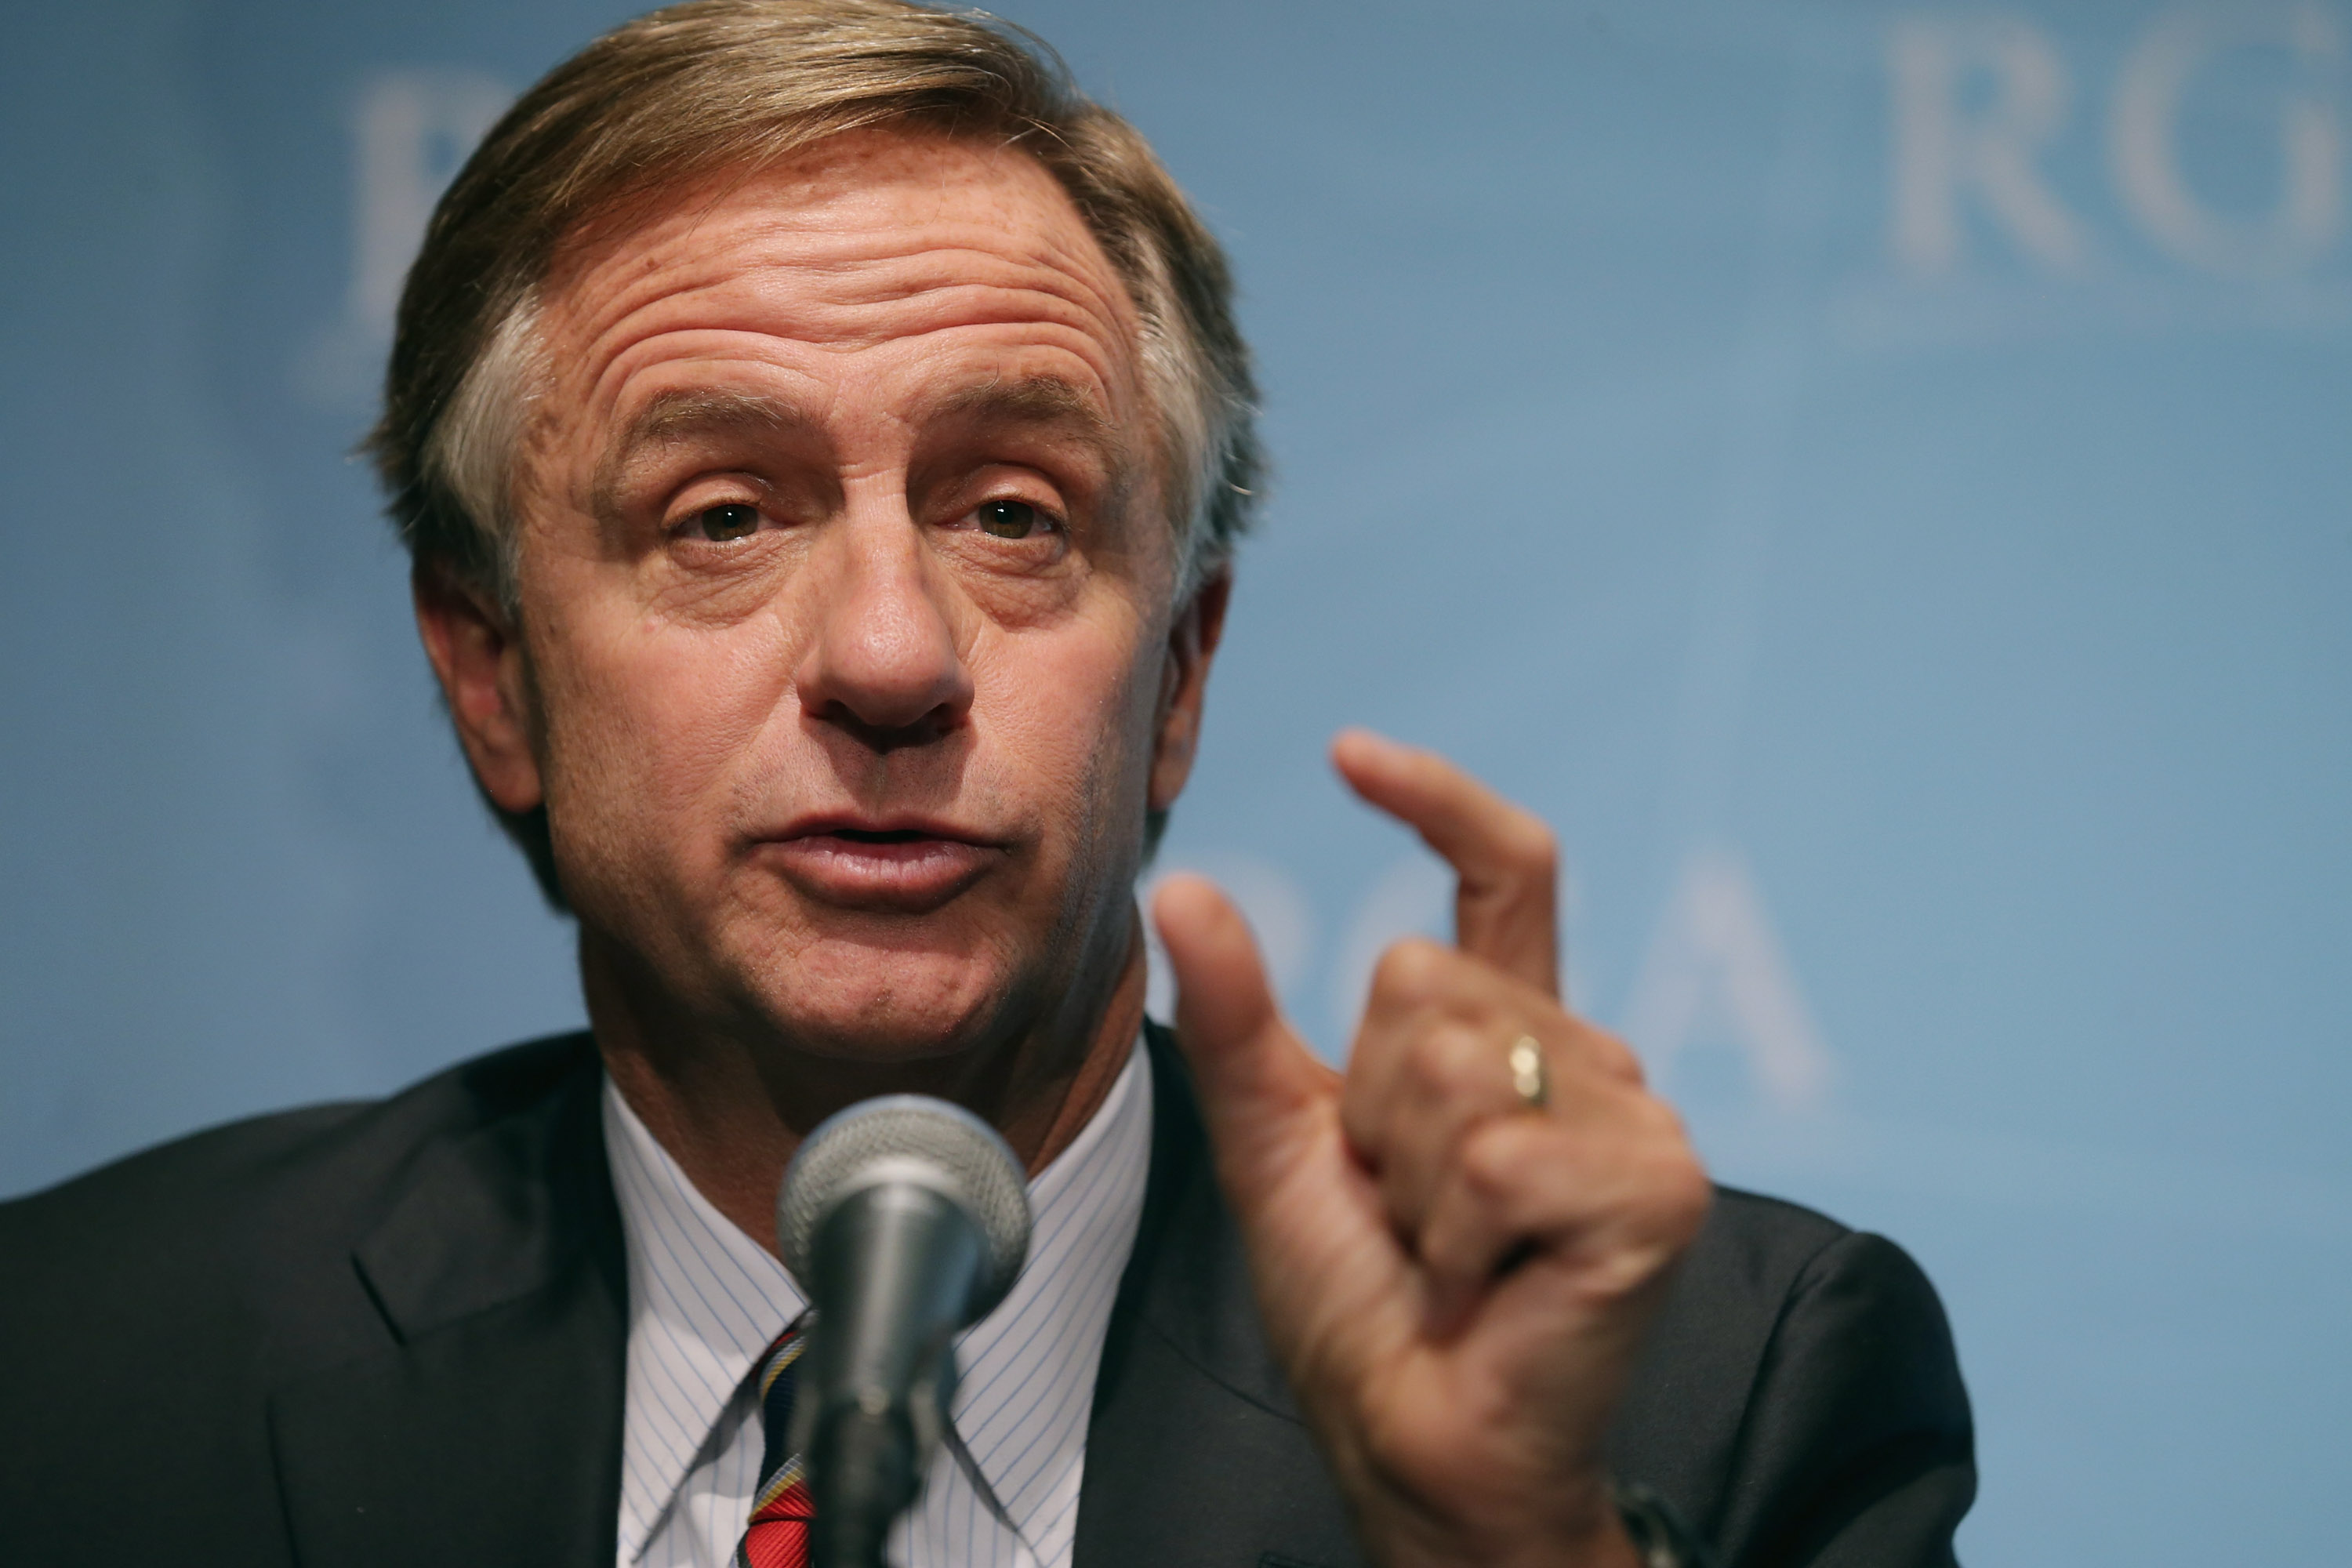 Republican Governors Association Chairman and Tennessee Governor Bill Haslam holds a news conference at the U.S. Chamber of Commerce February 23, 2015 in Washington, DC. (Getty Images)